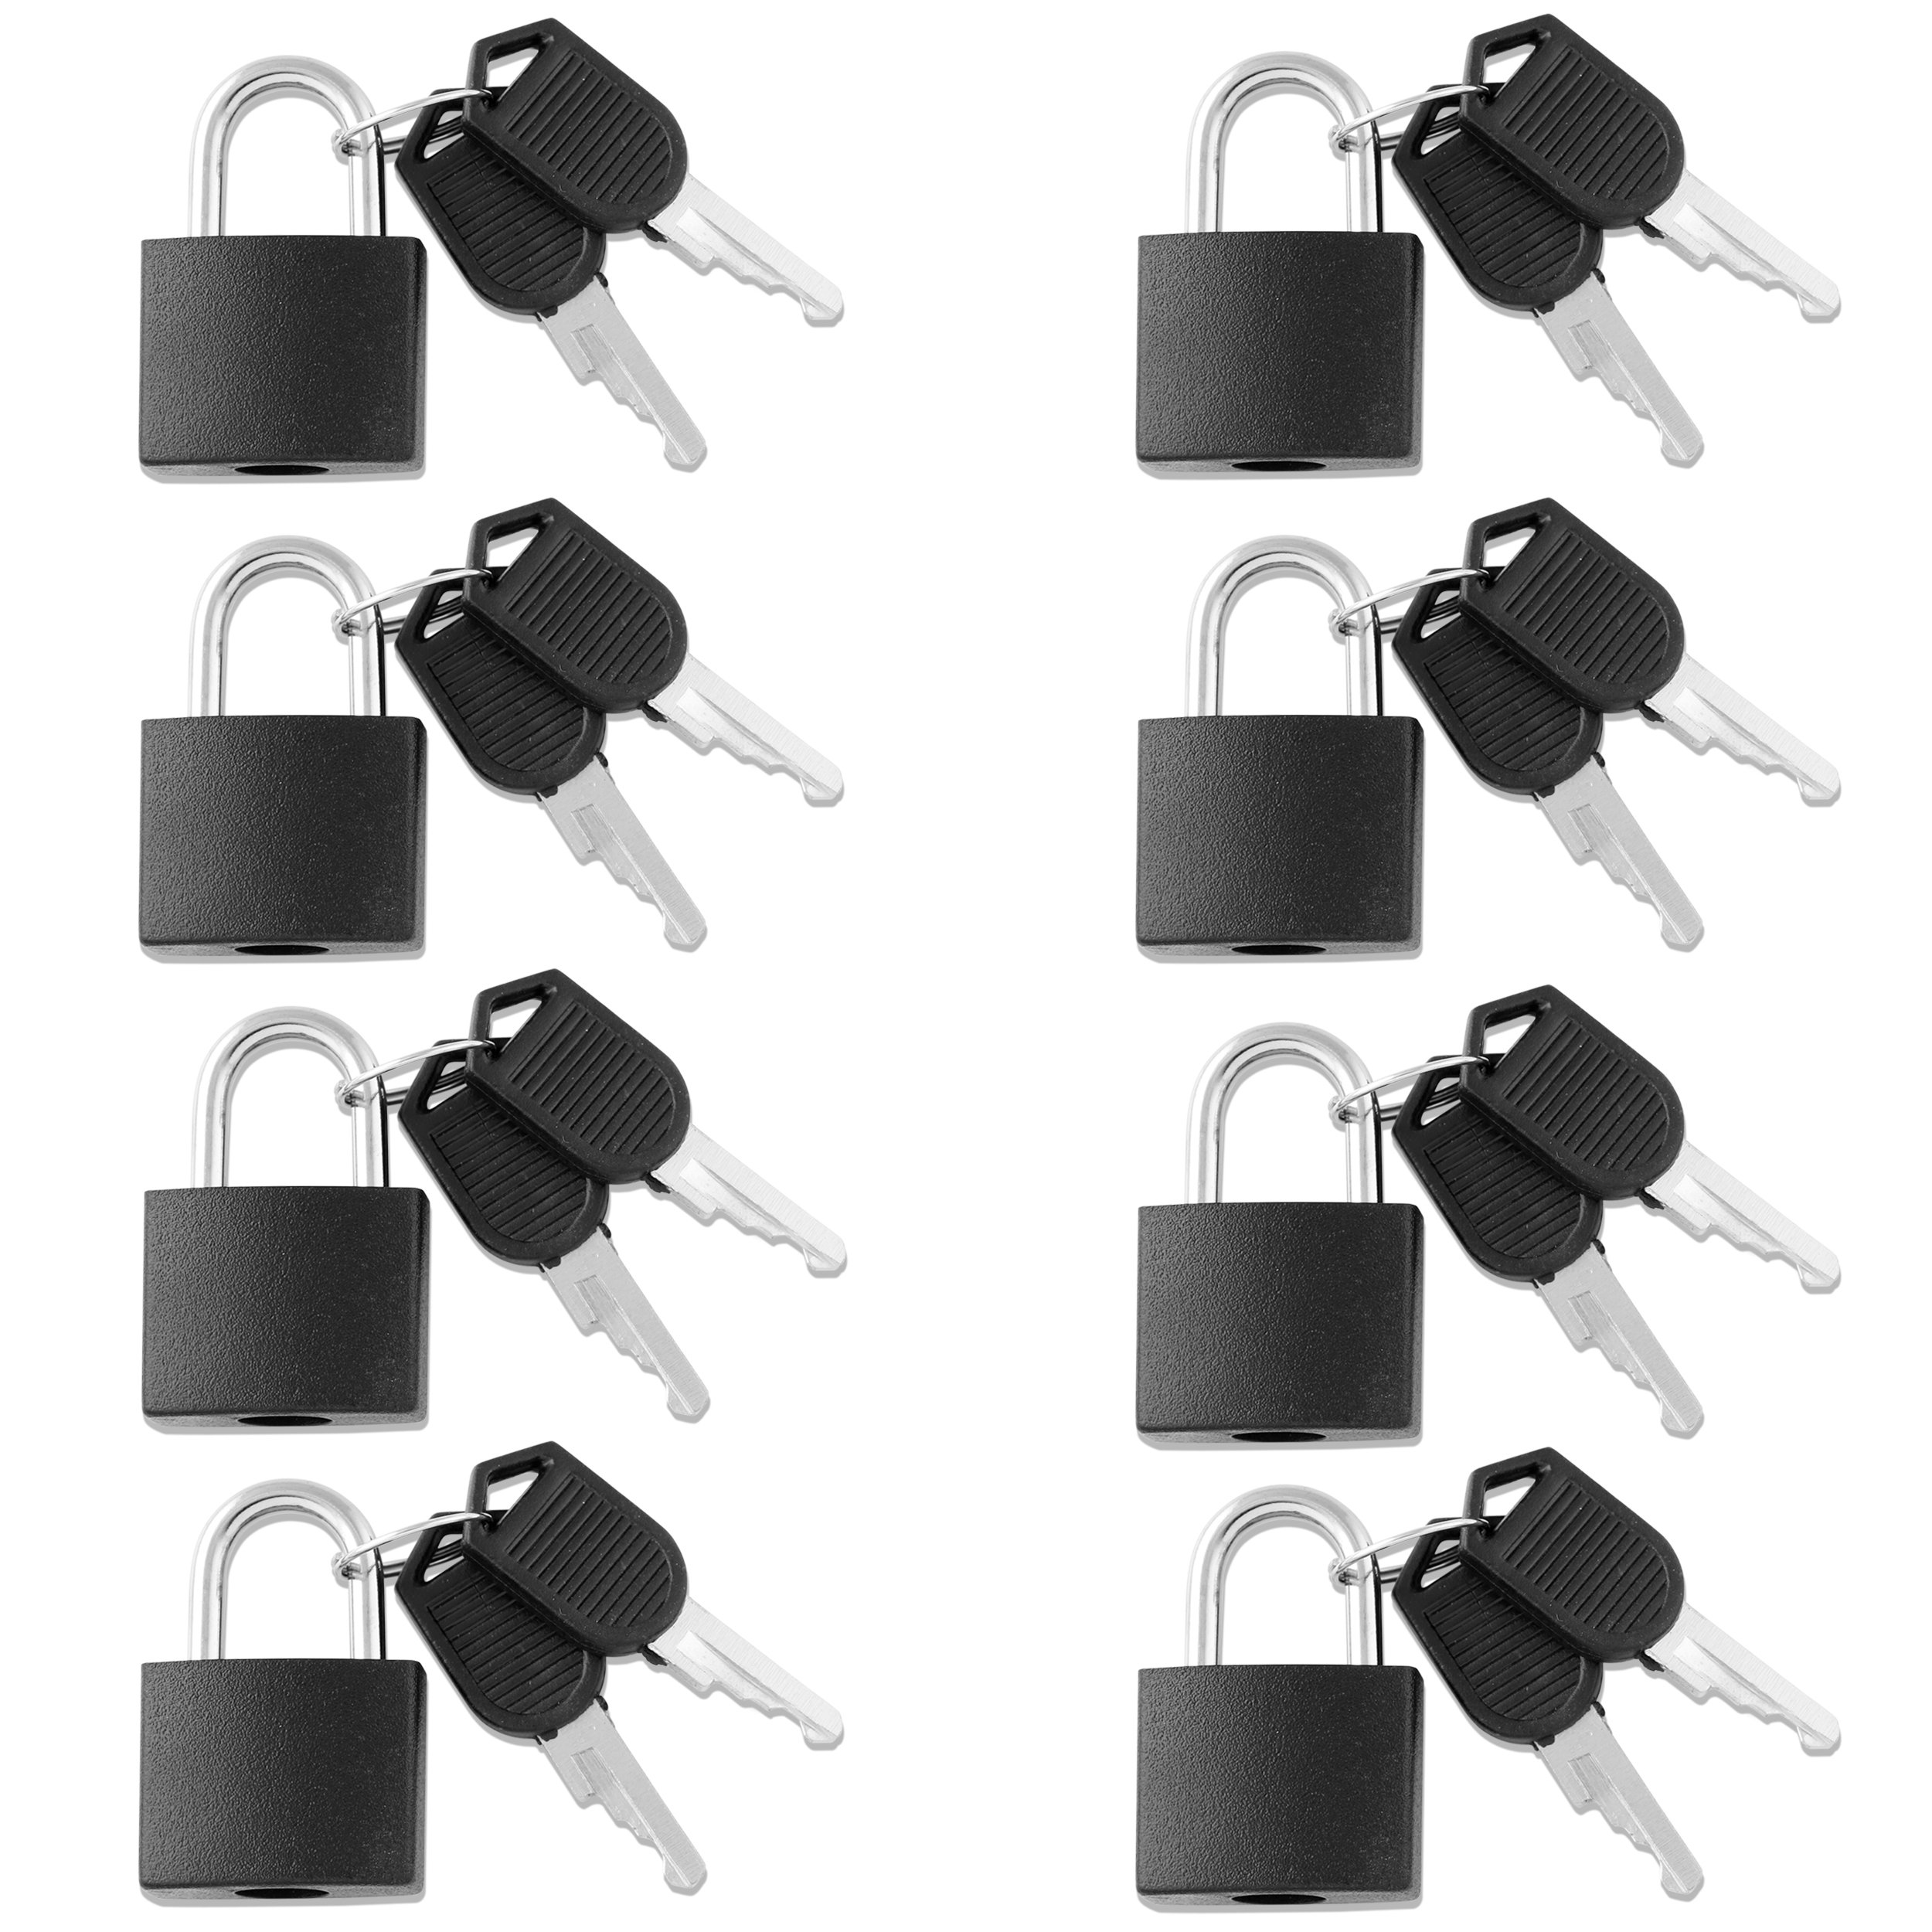 VIP Home Essentials - (PROMOTIONAL SALE) -Small Mini Durable ABS Covered Solid Brass Body Individually Keyed Padlock - 8 Pack Lock Set